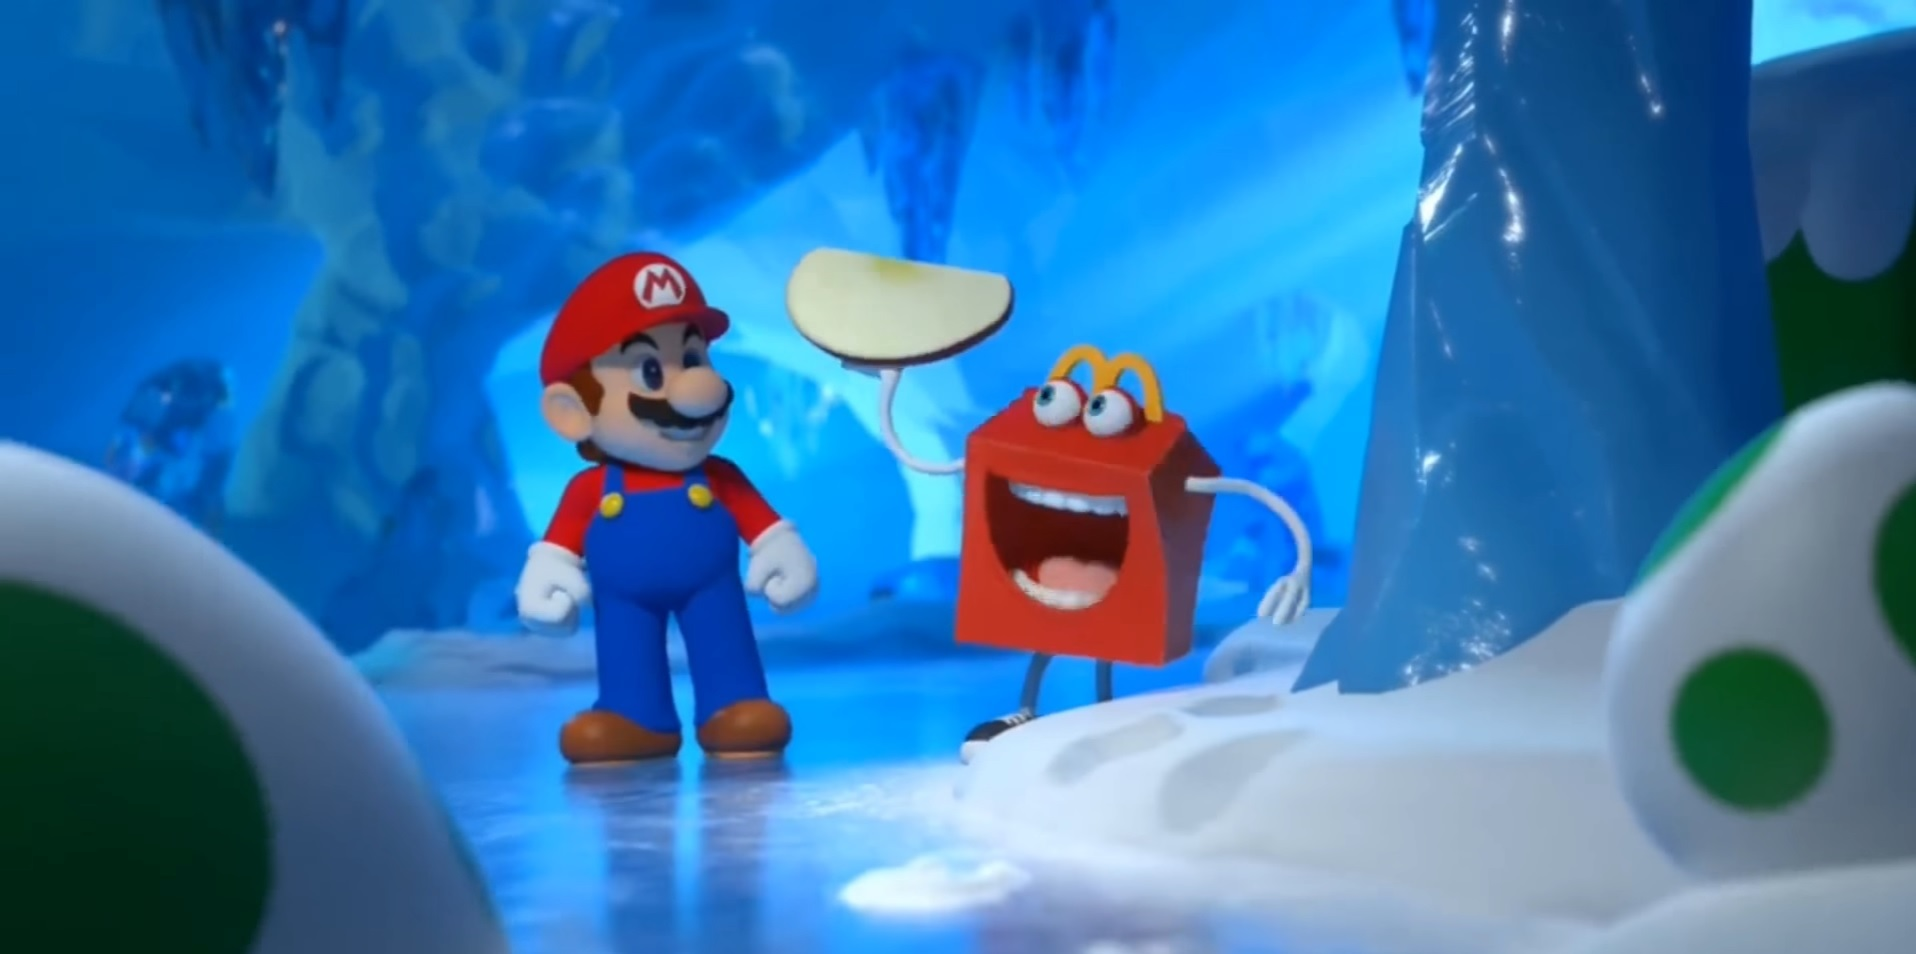 Super Mario Mcdonalds Happy Meal Toys Returning To The Uk This Week Vg247